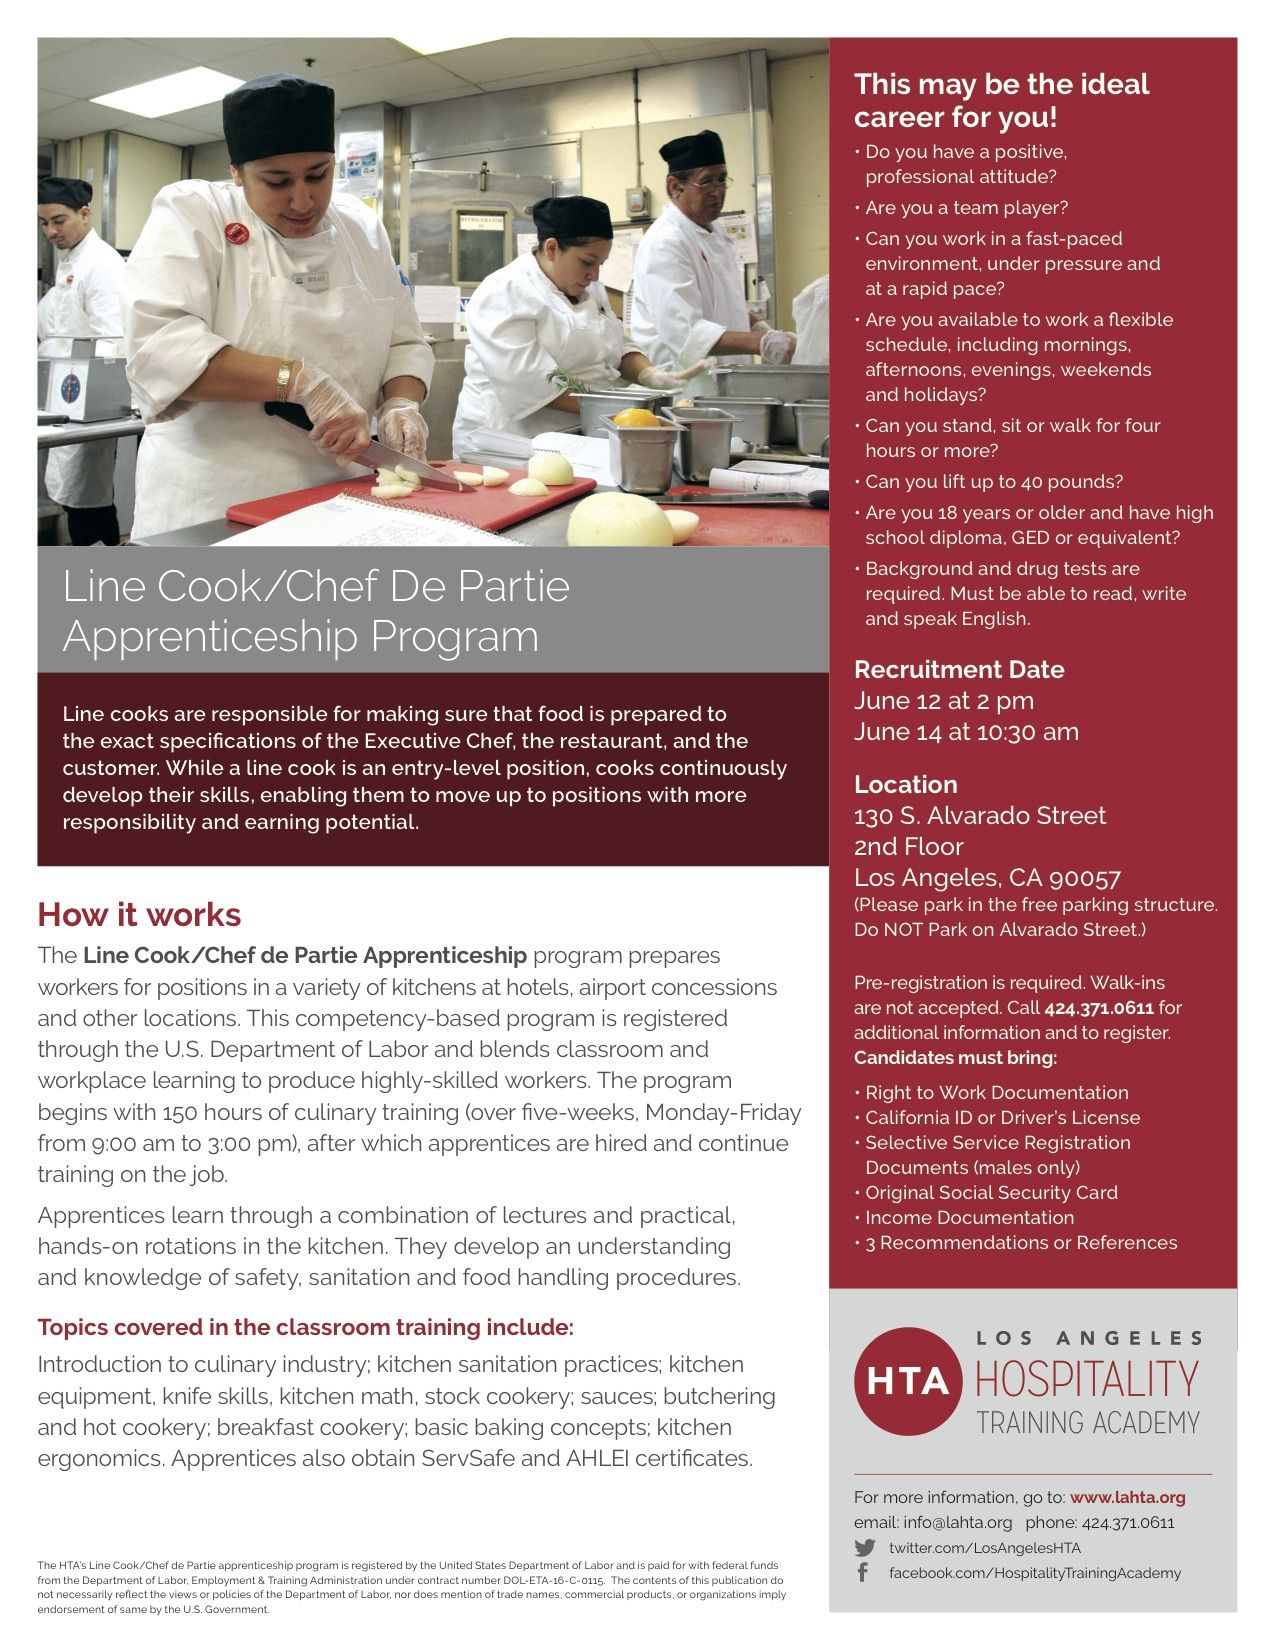 Line Cook/Chef De Partie Apprenticeship Program   Hospitality Training Academy  Los AngelesHospitality Training Academy